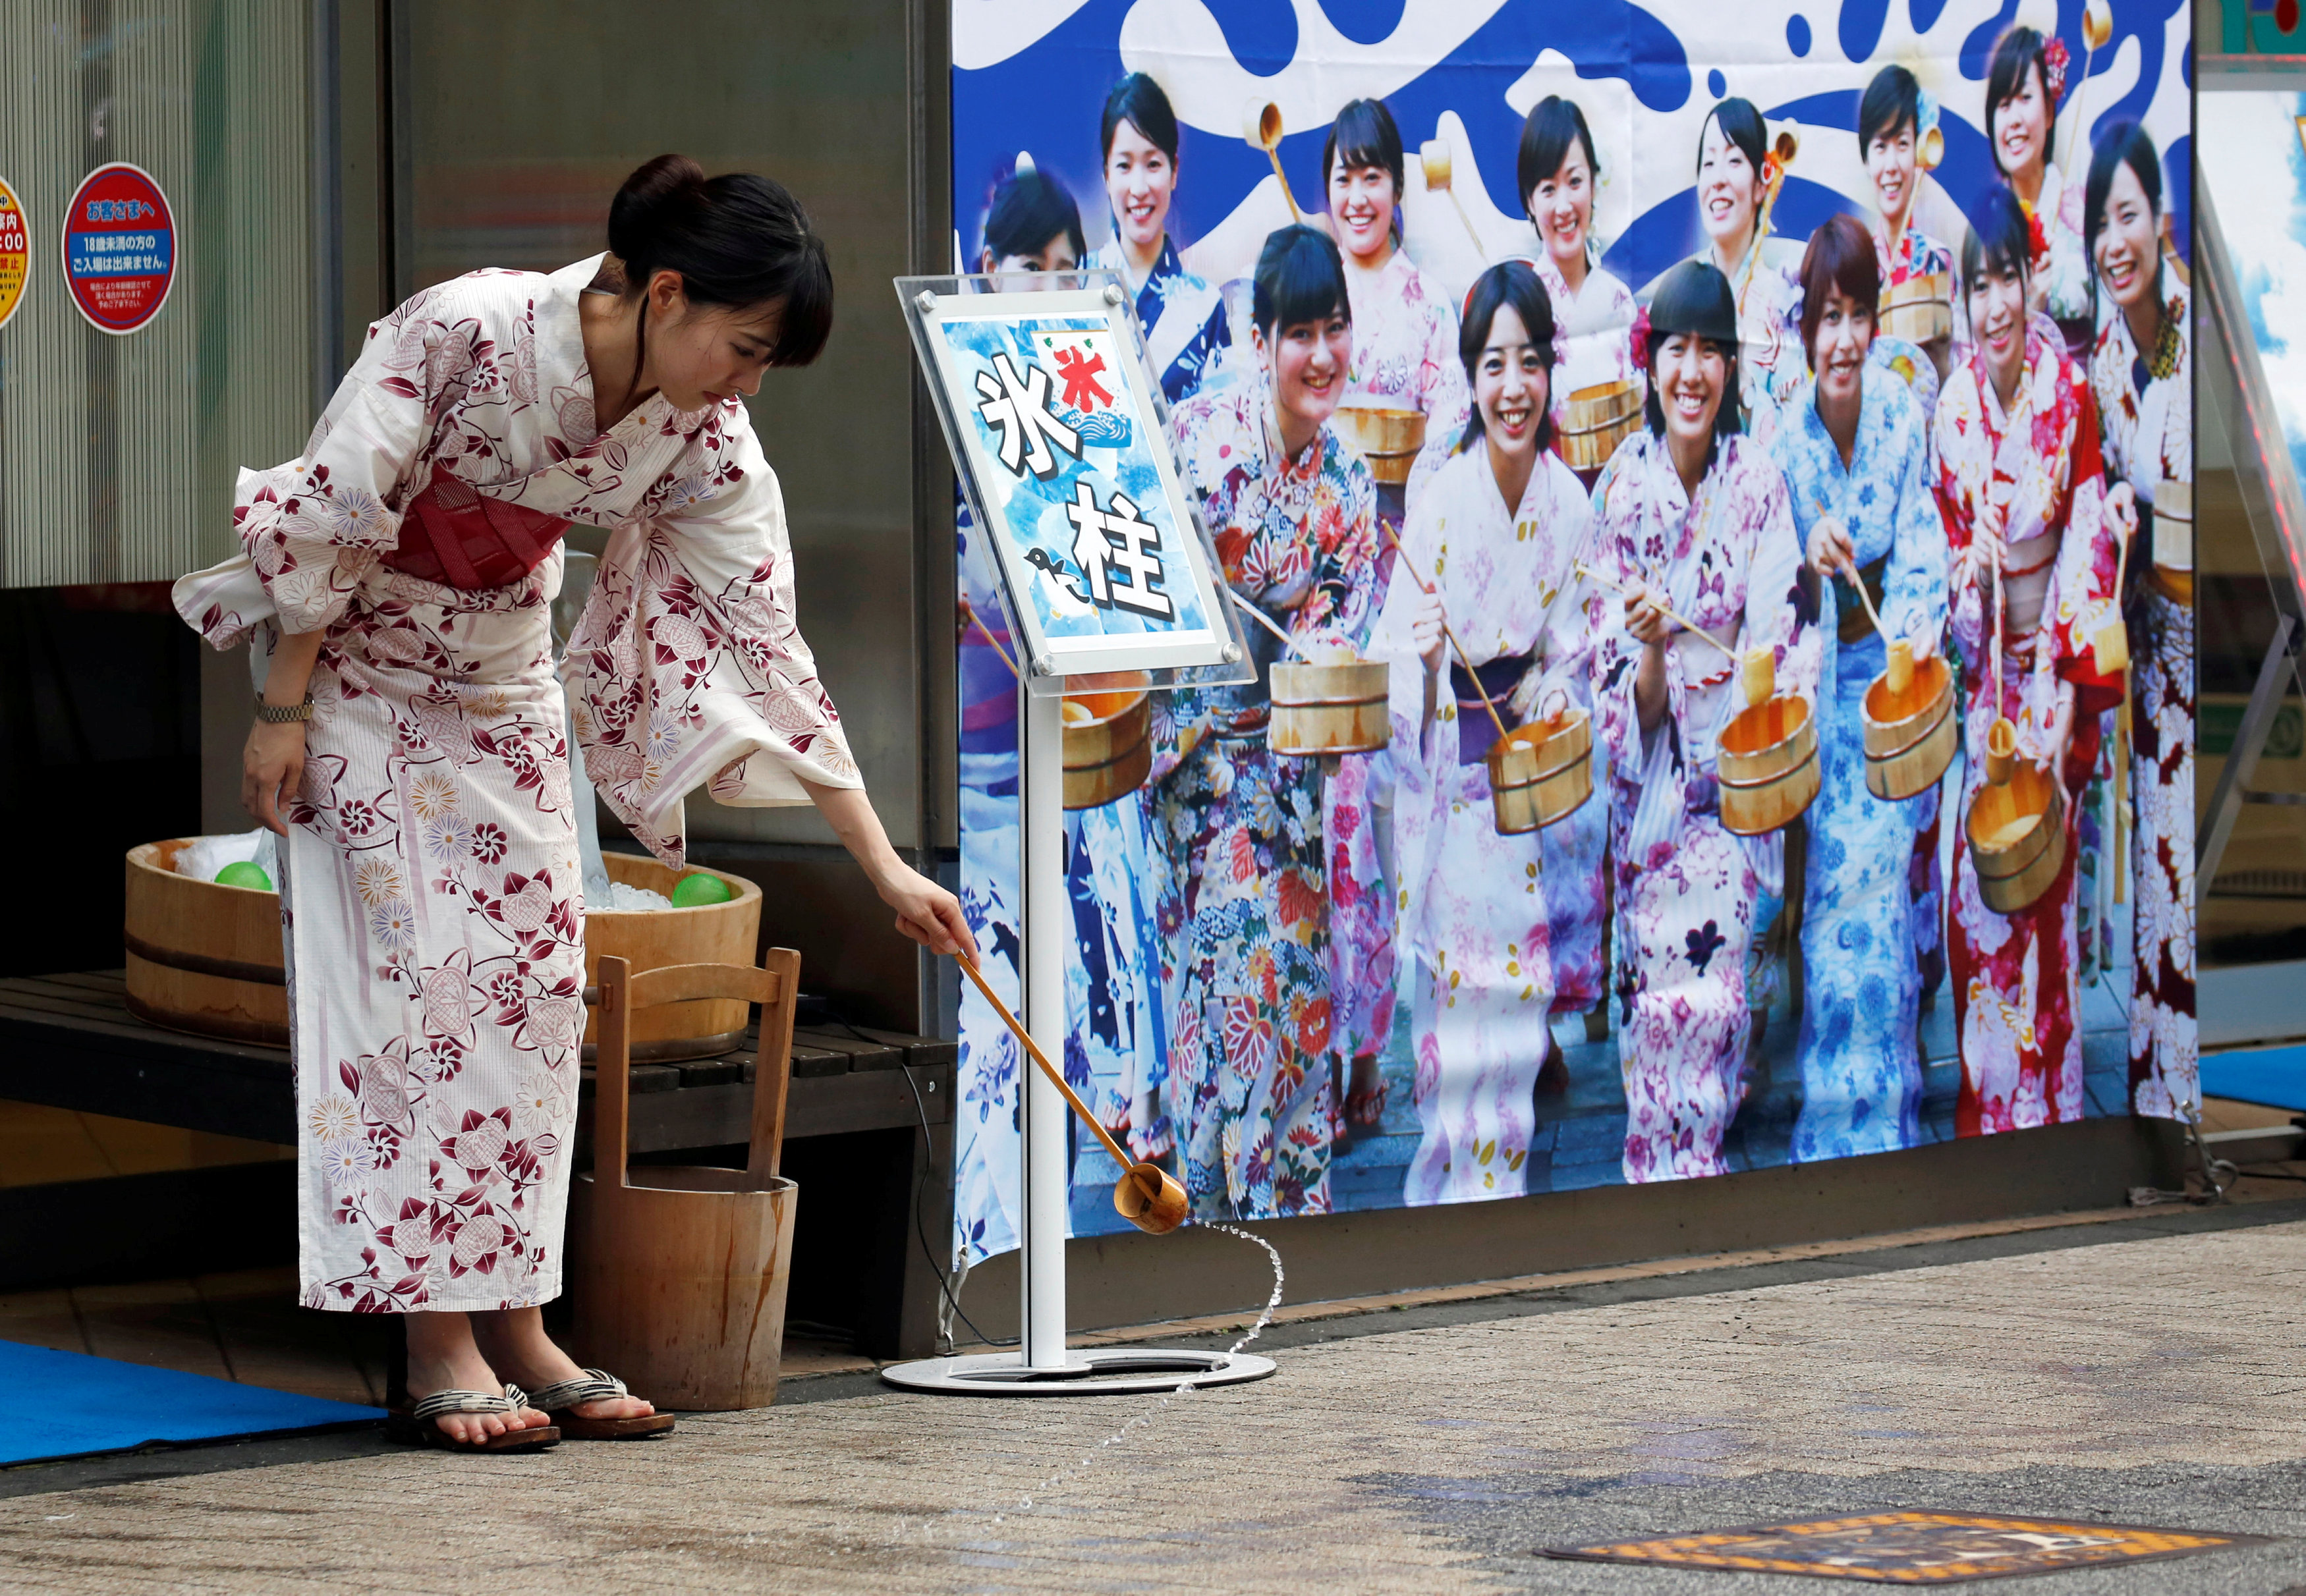 Japan heatwave - street - Woman in traditional Japanese clothing